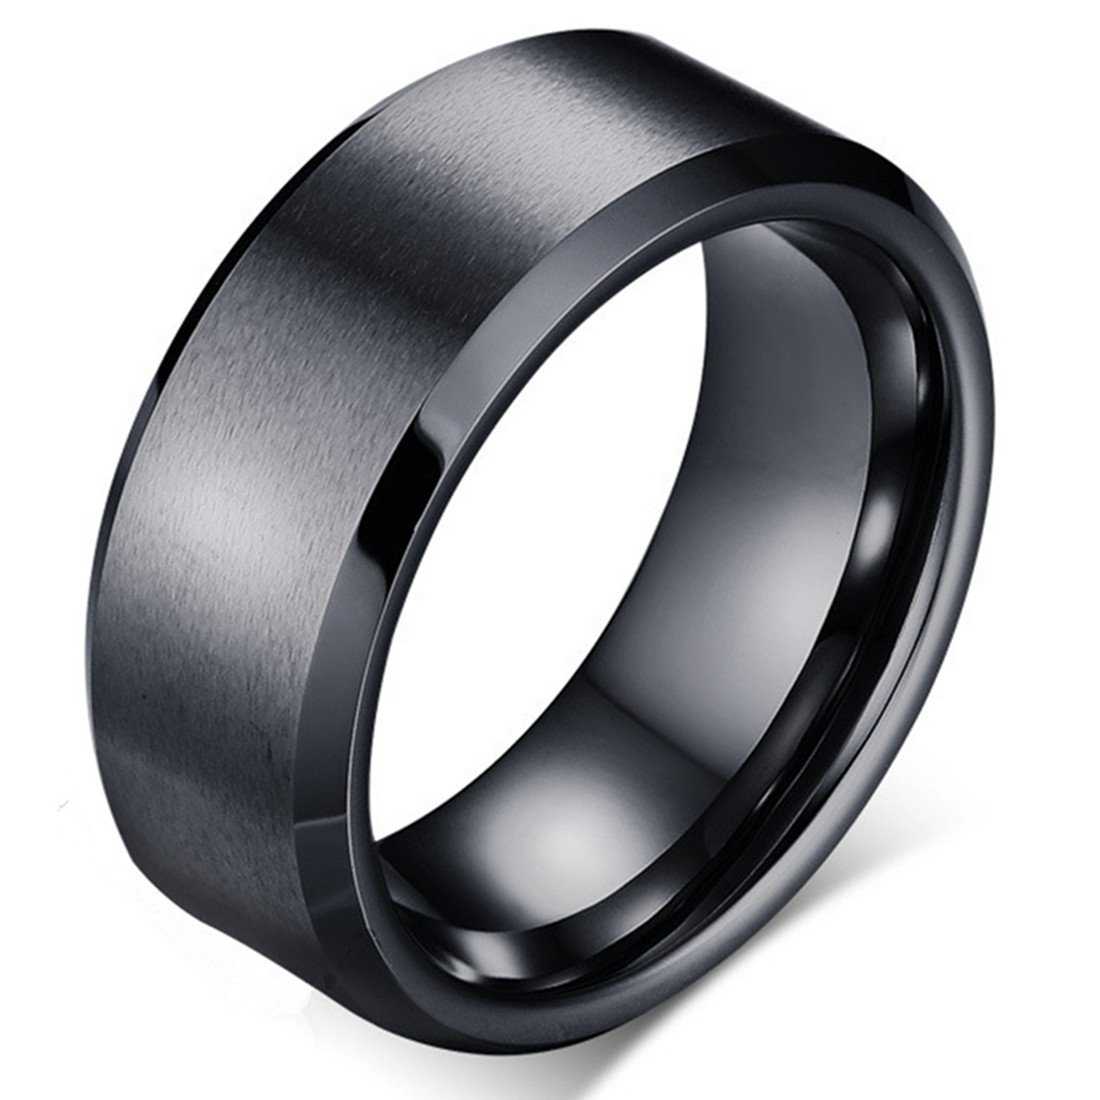 Tungsten Carbide Black Mens 8mm Wedding Band Brushed Matte Finish Polished Edge Engagement Ring -Kiss me (9)